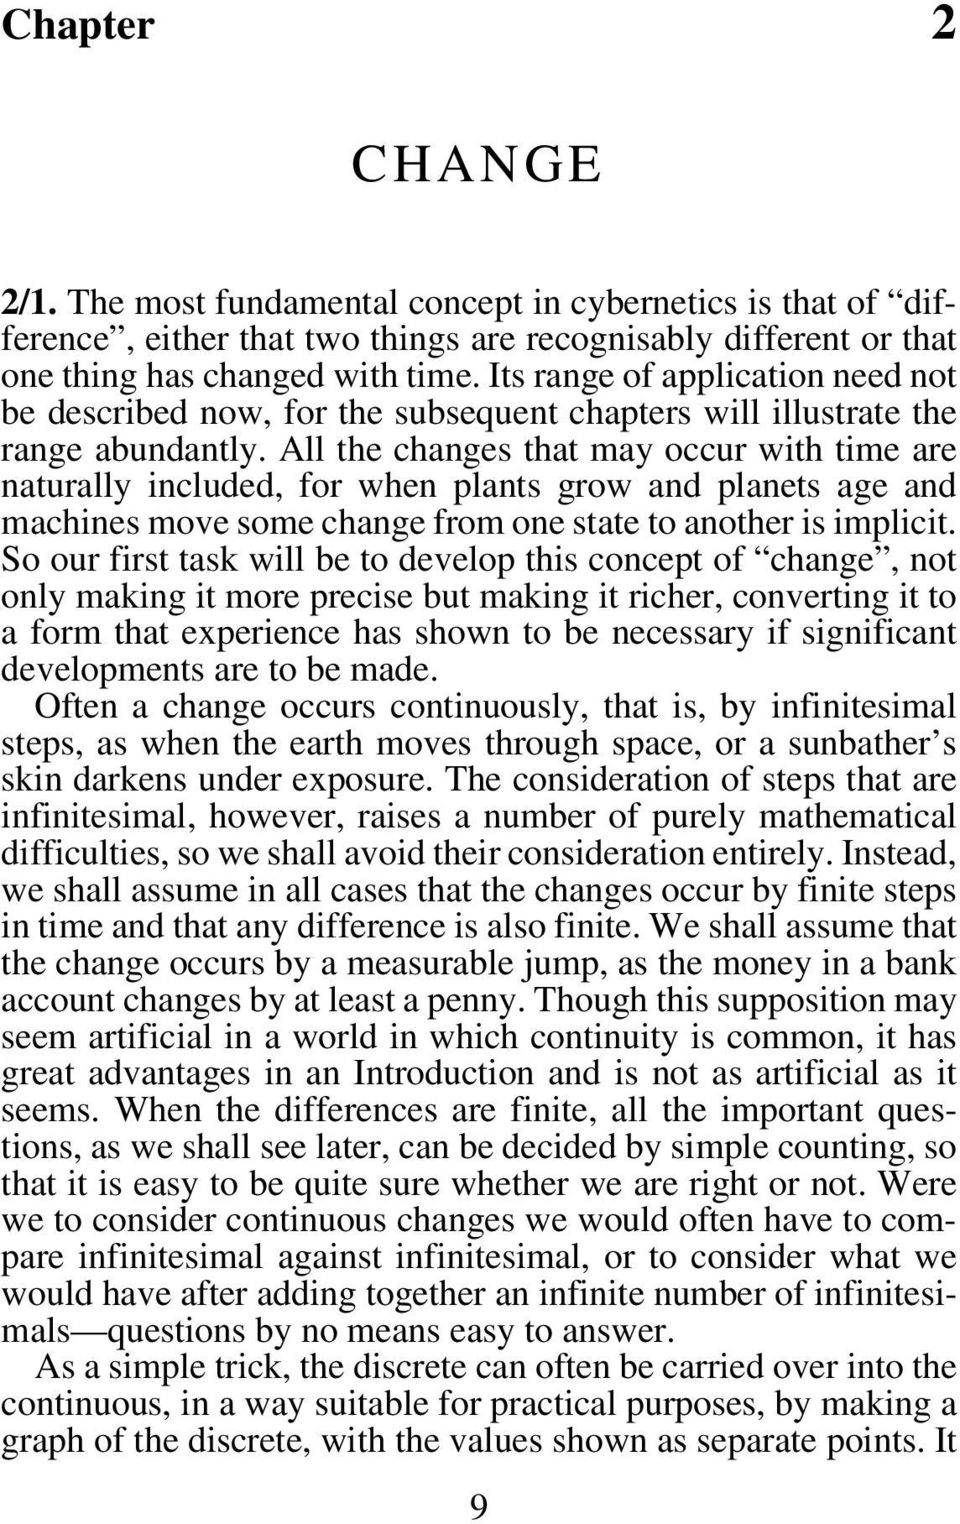 All the changes that may occur with time are naturally included, for when plants grow and planets age and machines move some change from one state to another is implicit.